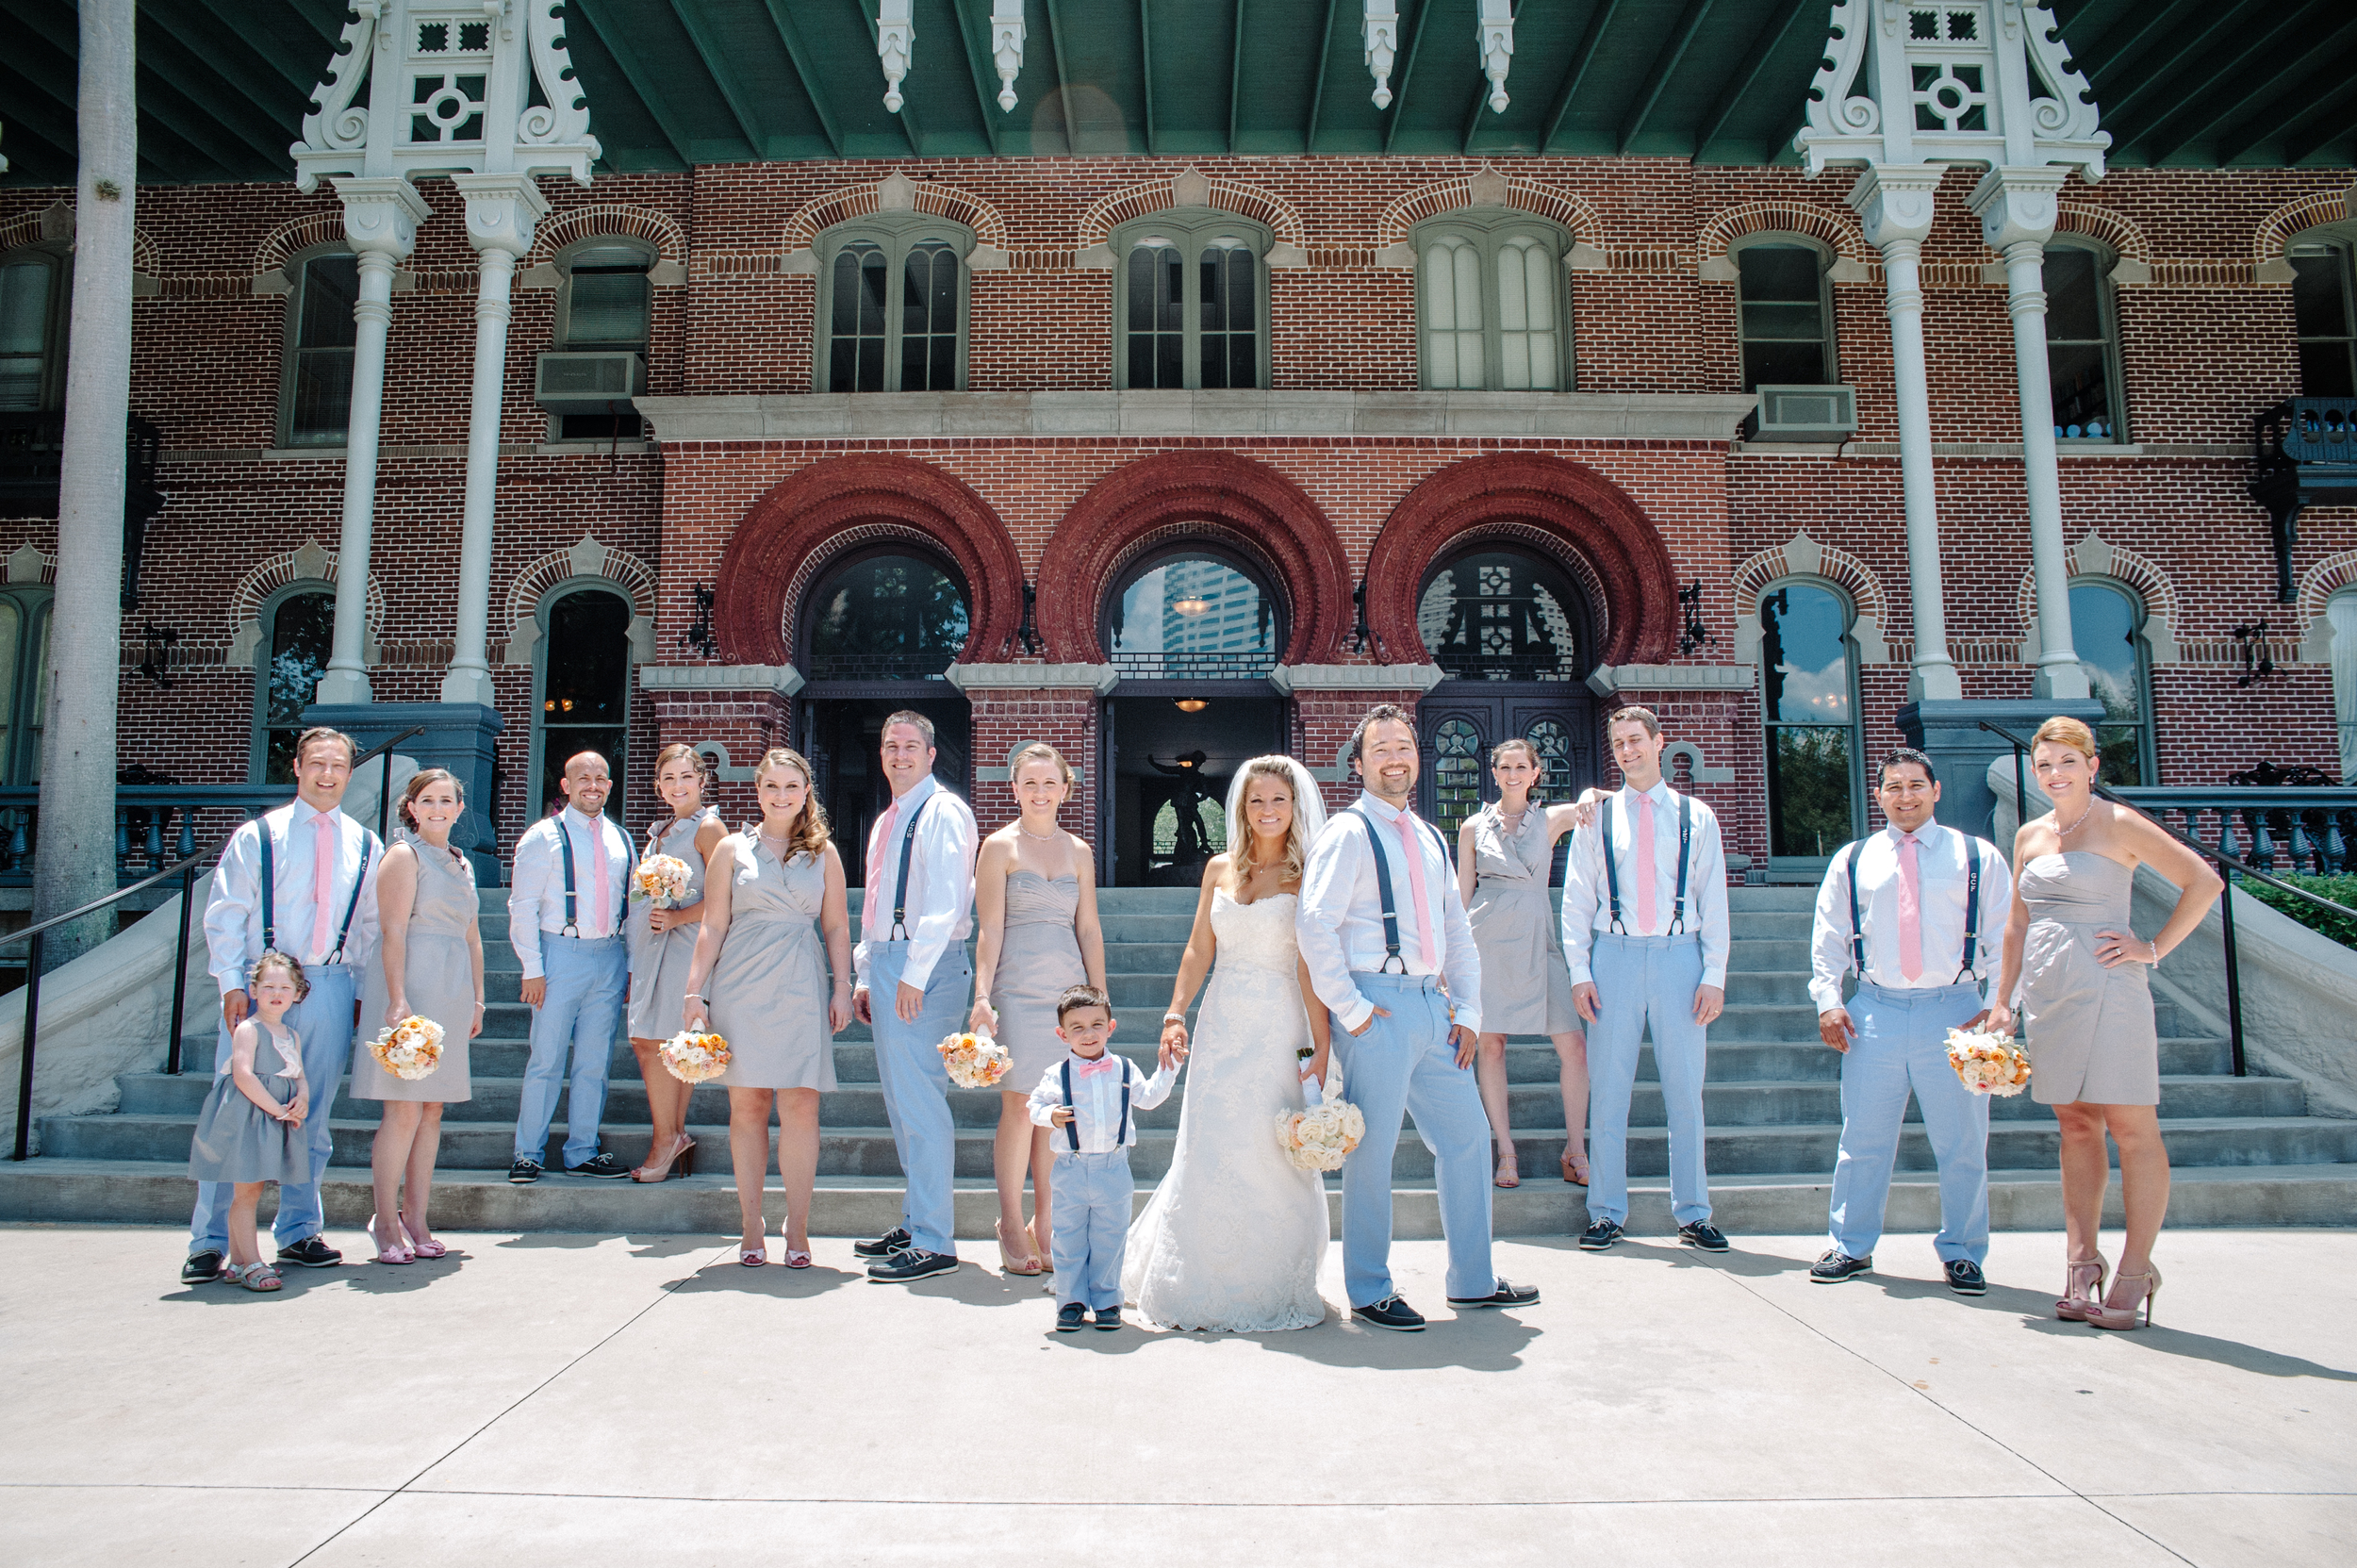 The bride and groom shared a First Look and wedding party photos at the historic Henry B Plant Museum